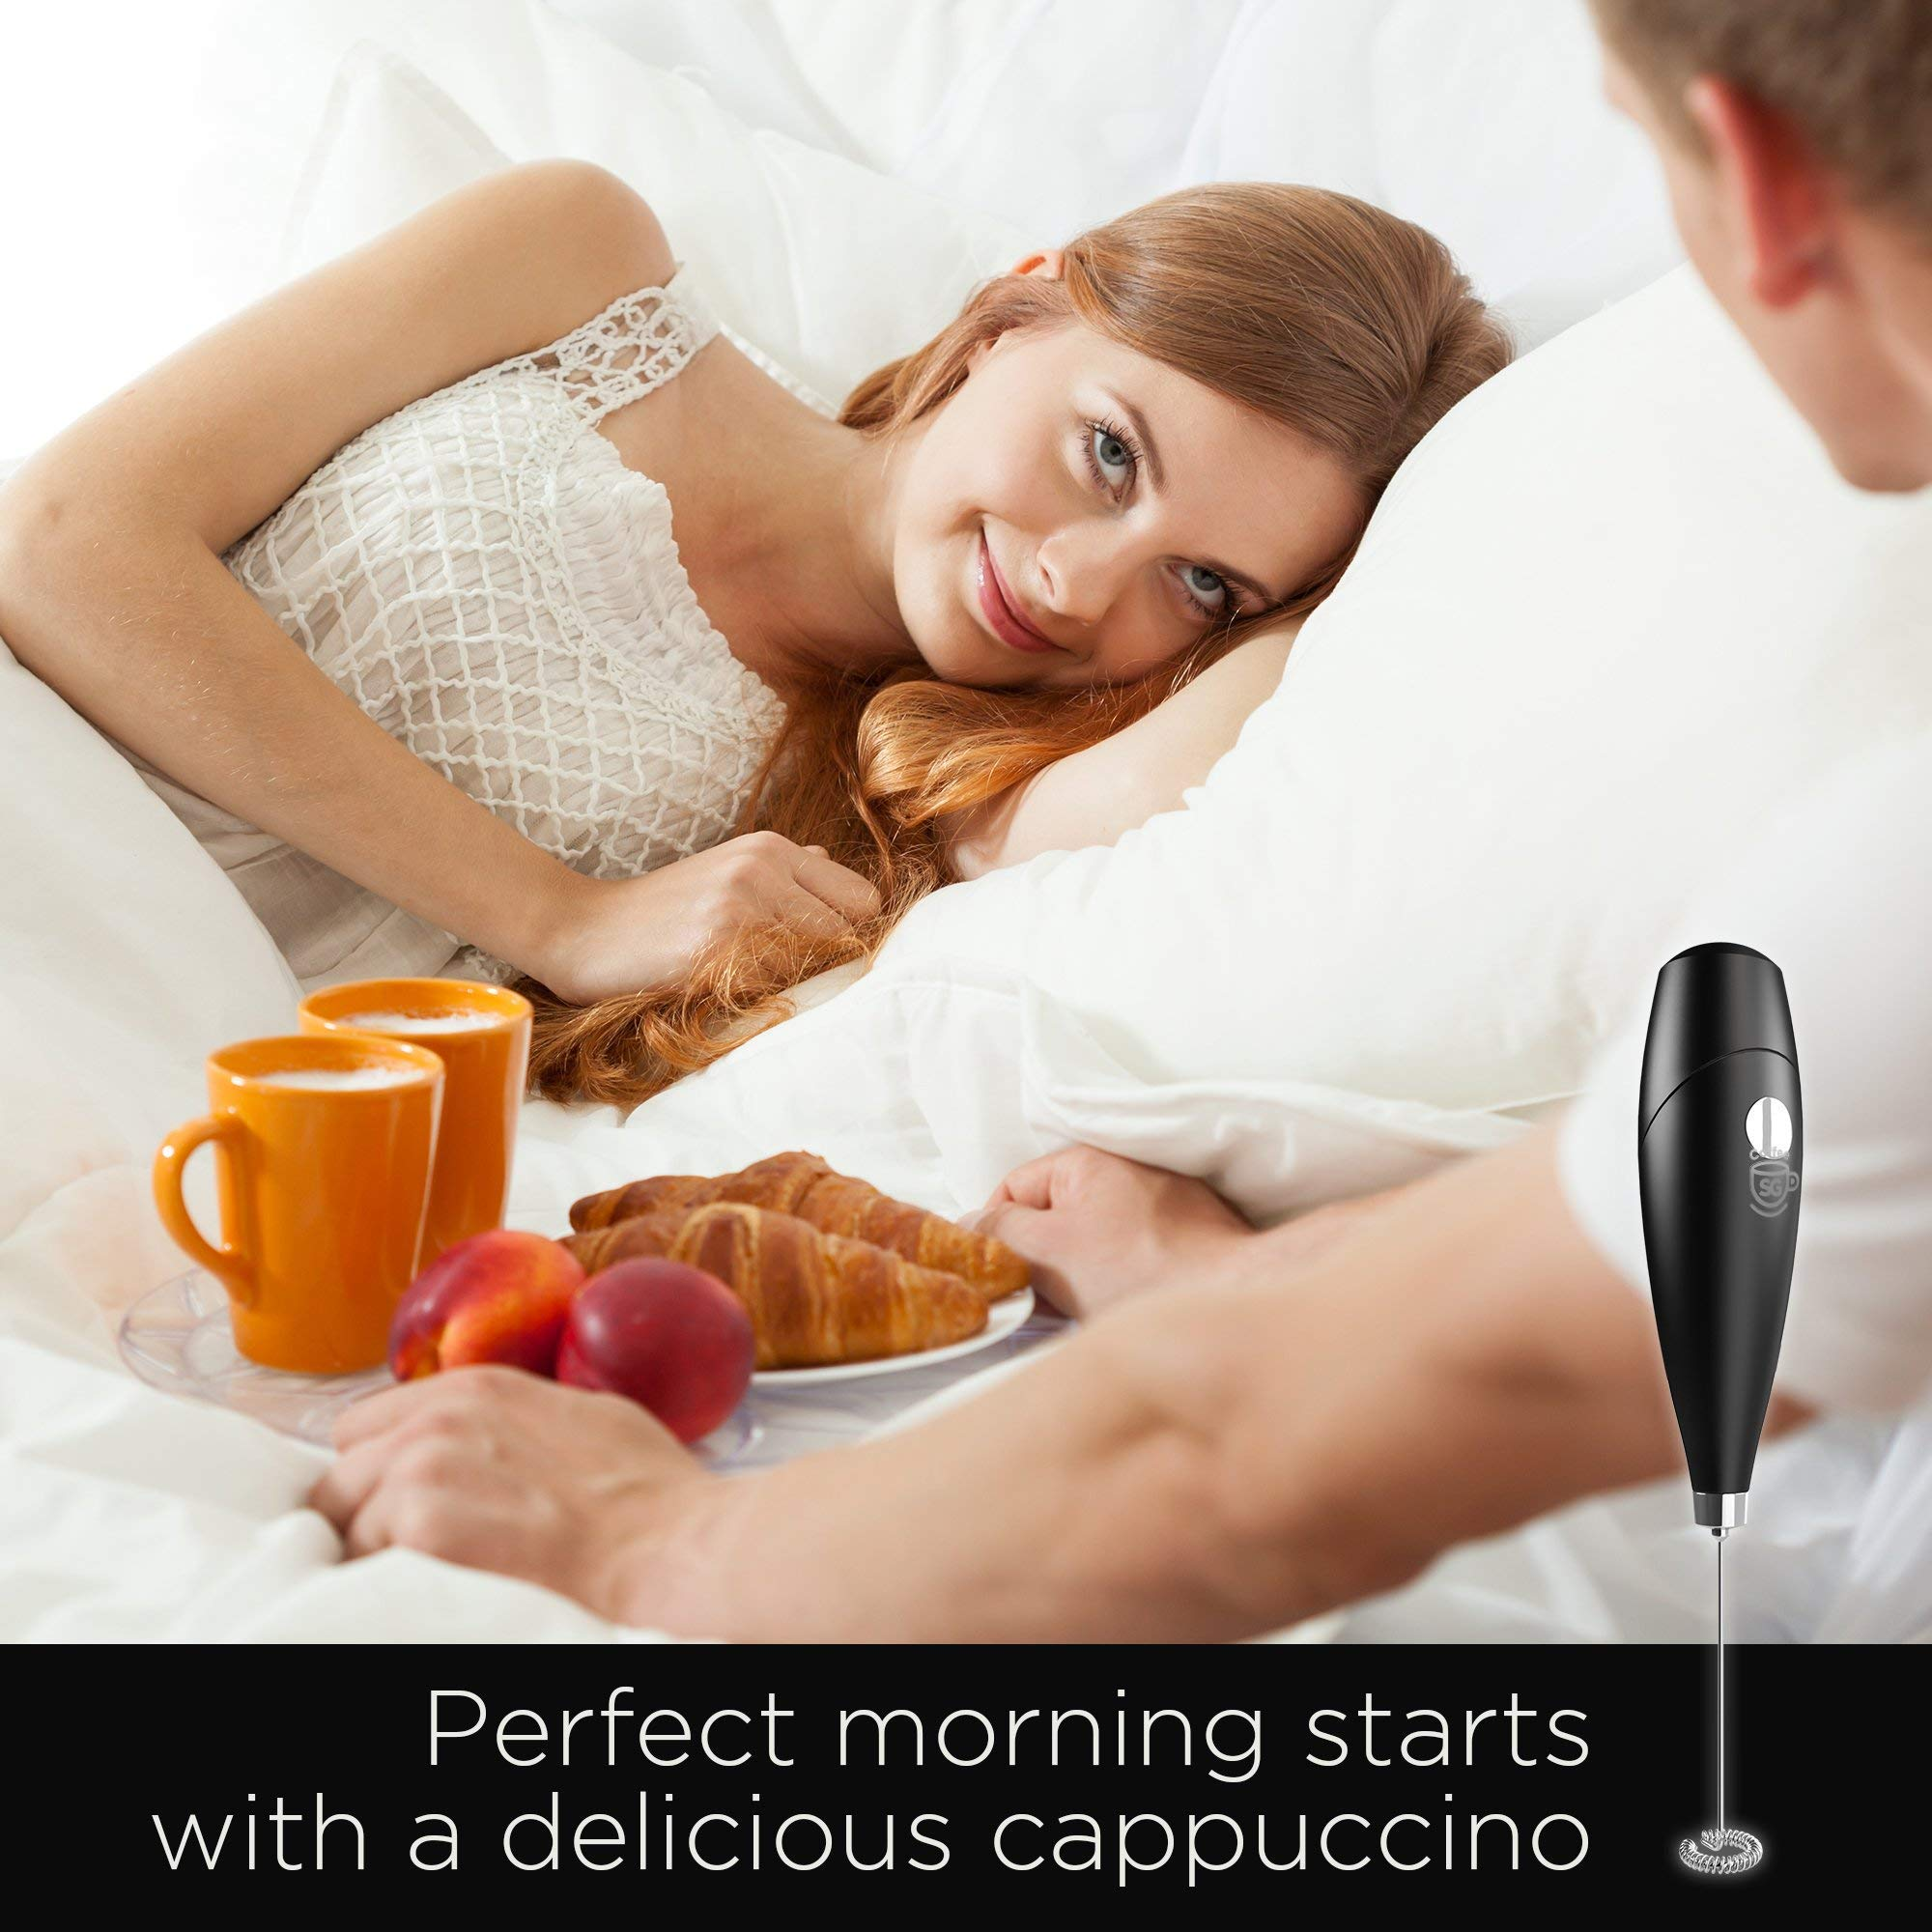 Milk-Frother-Coffee-Frother-Electric-Whisk-Powerful-Latte-Cappuccino-Frother-Wand-Hot-Milk-Foam-Maker-Best-Soya-Milk-Mixer-Free-eBook-Extra-Whisk-Worth-397